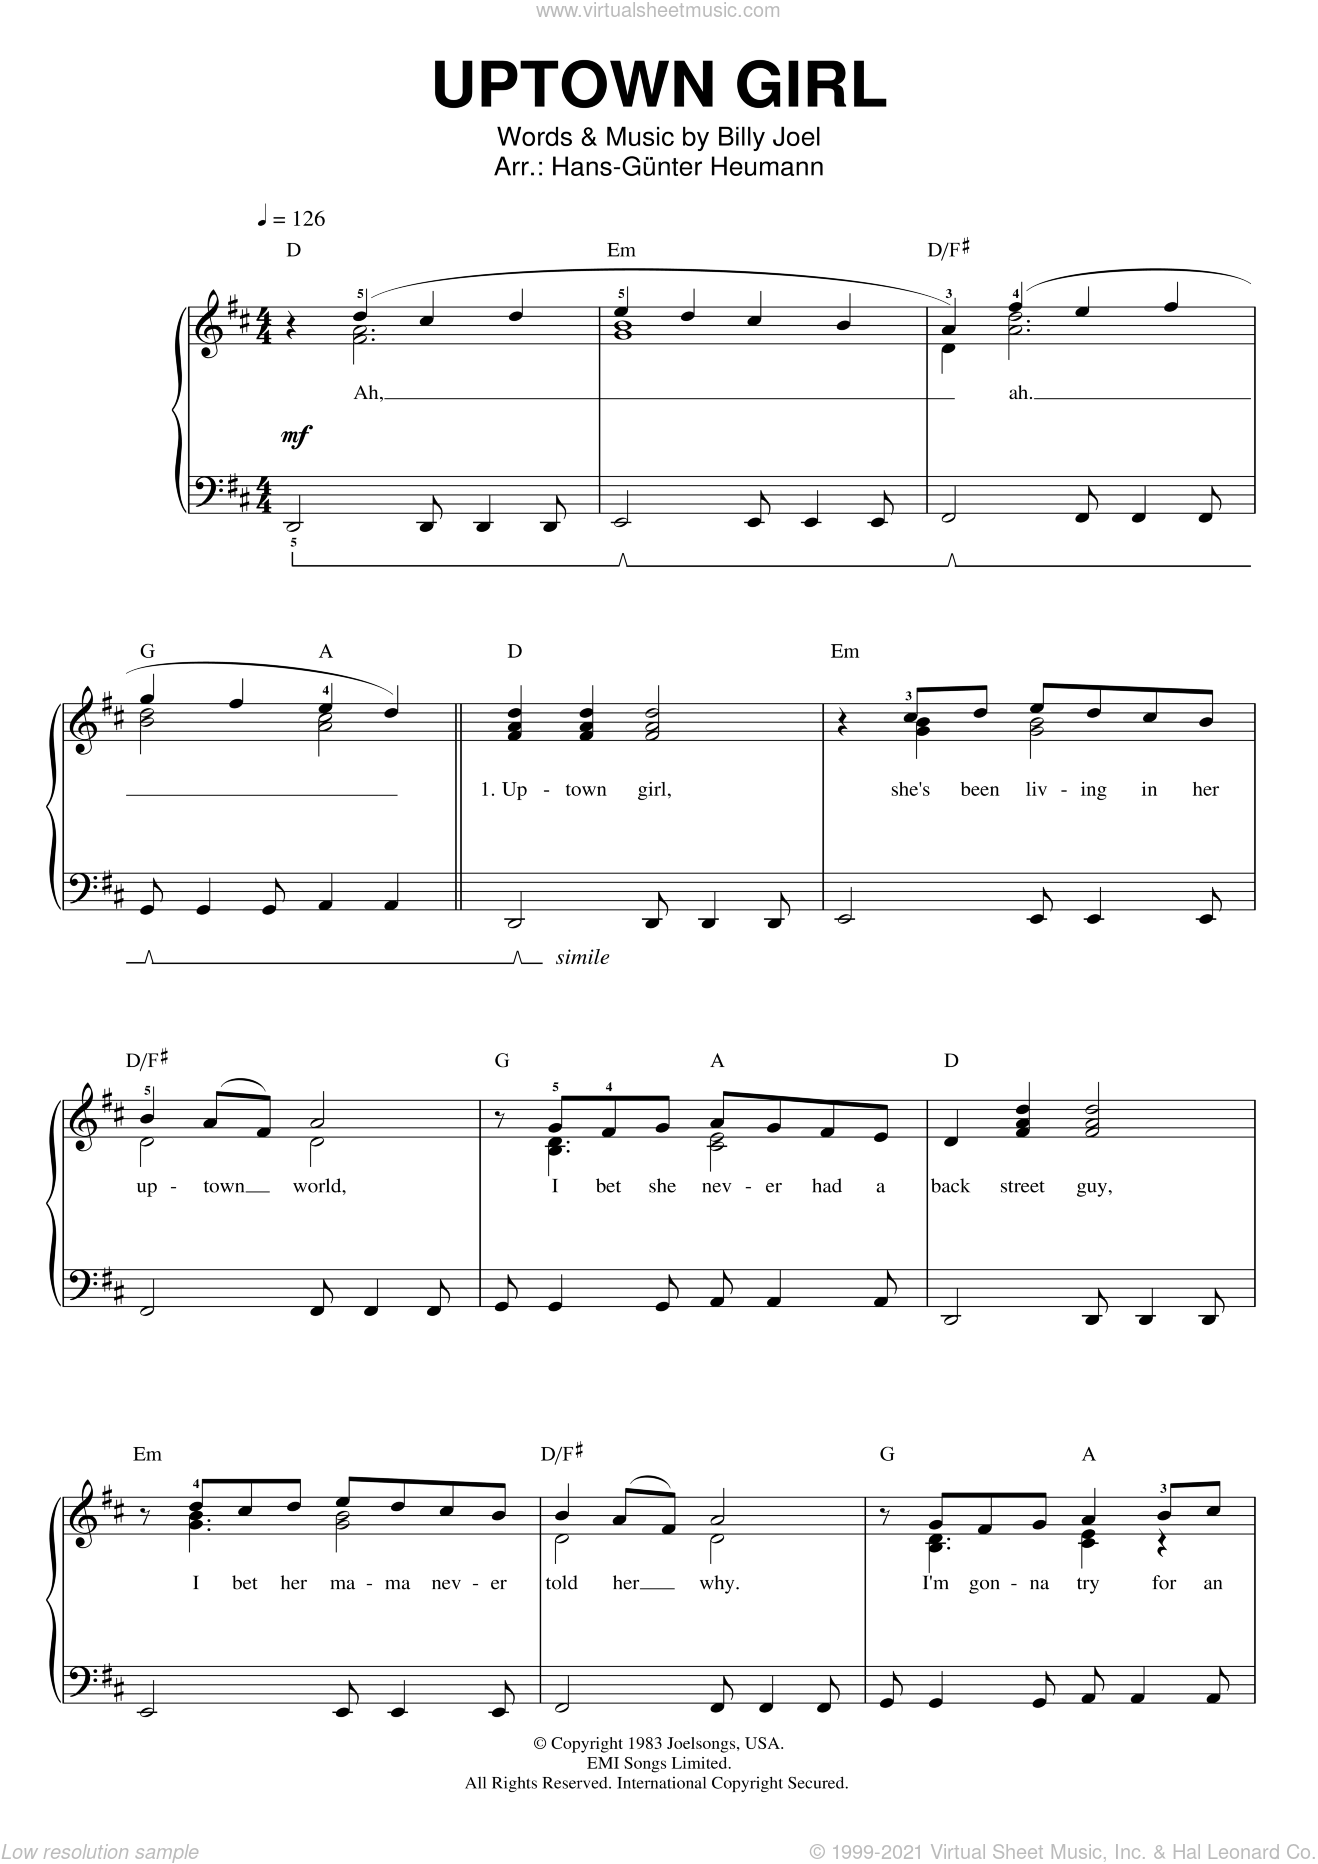 Uptown Girl sheet music for piano solo (chords) by Billy Joel